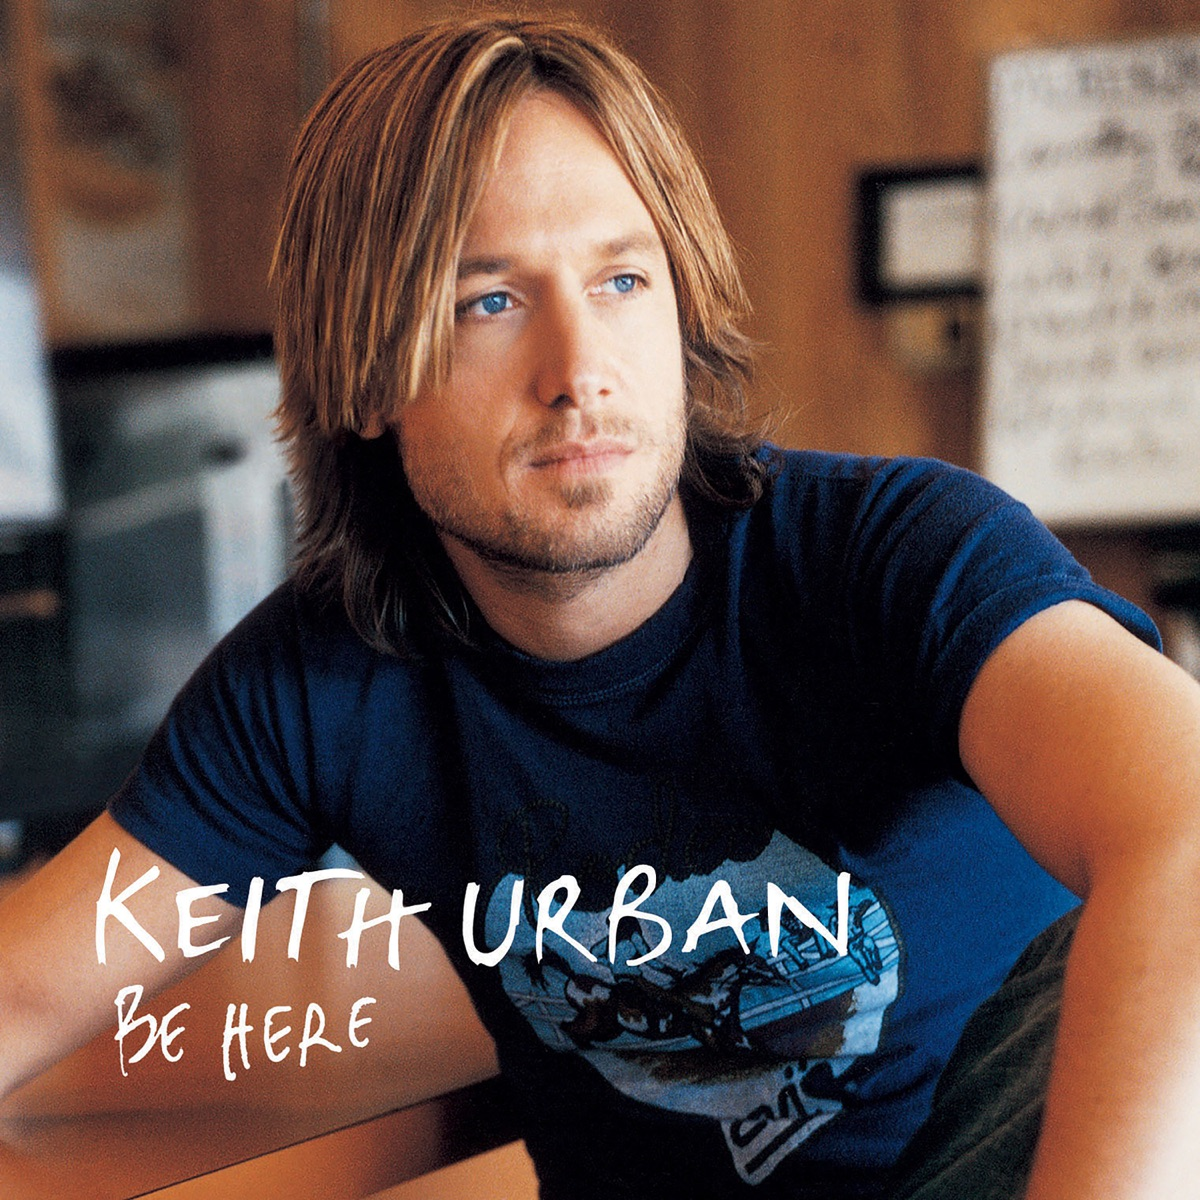 Be Here Keith Urban CD cover